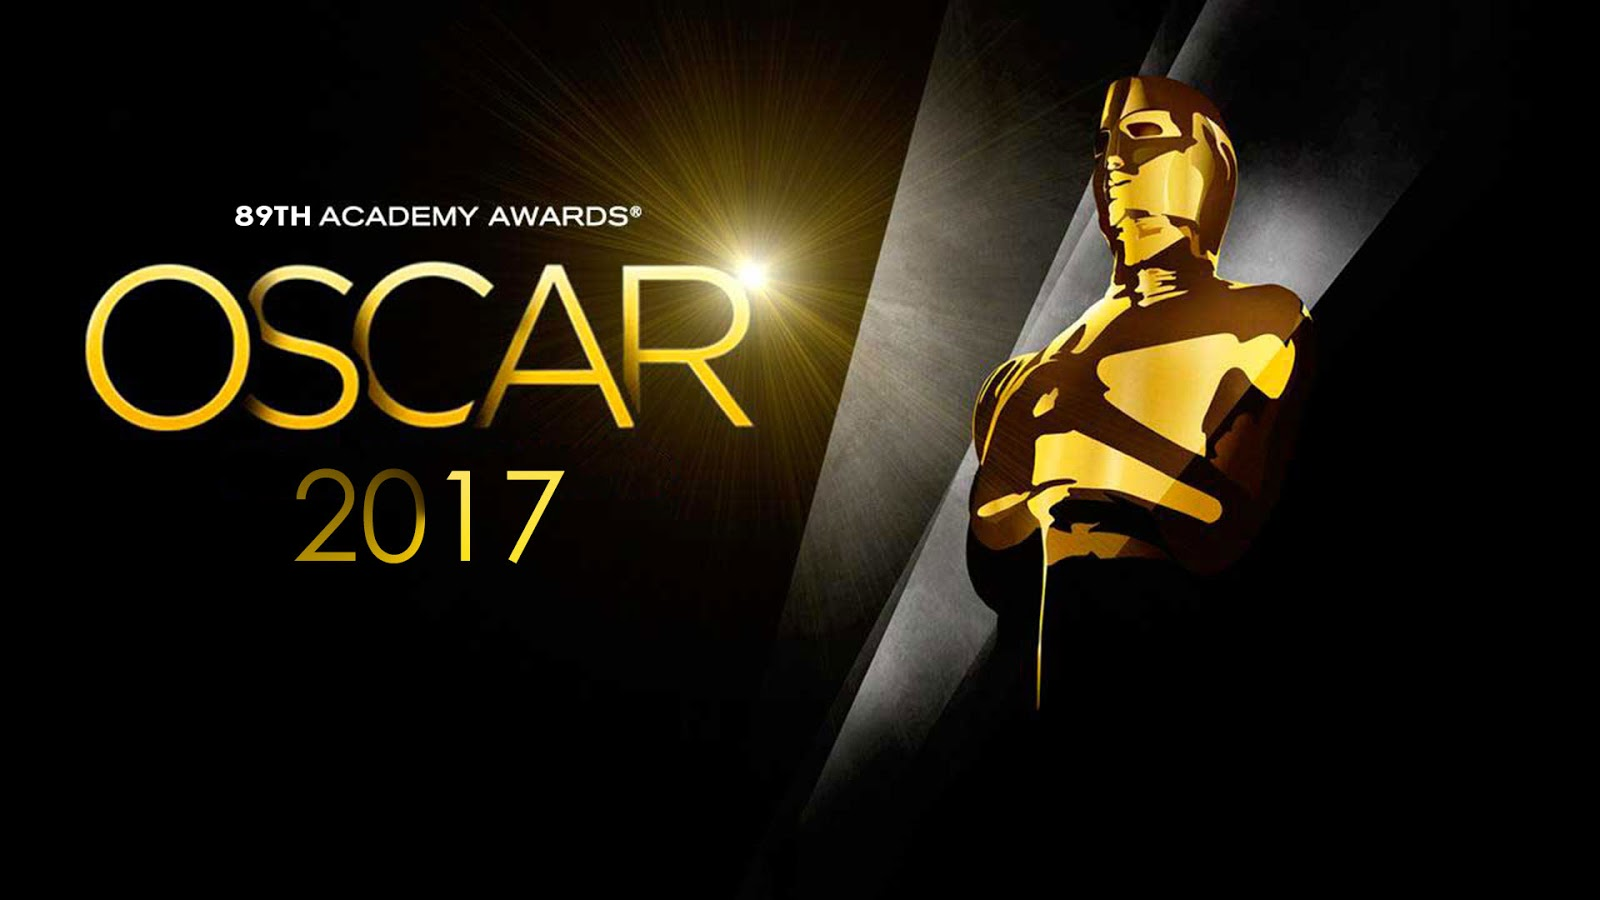 2017 Oscars 89th Academy Awards